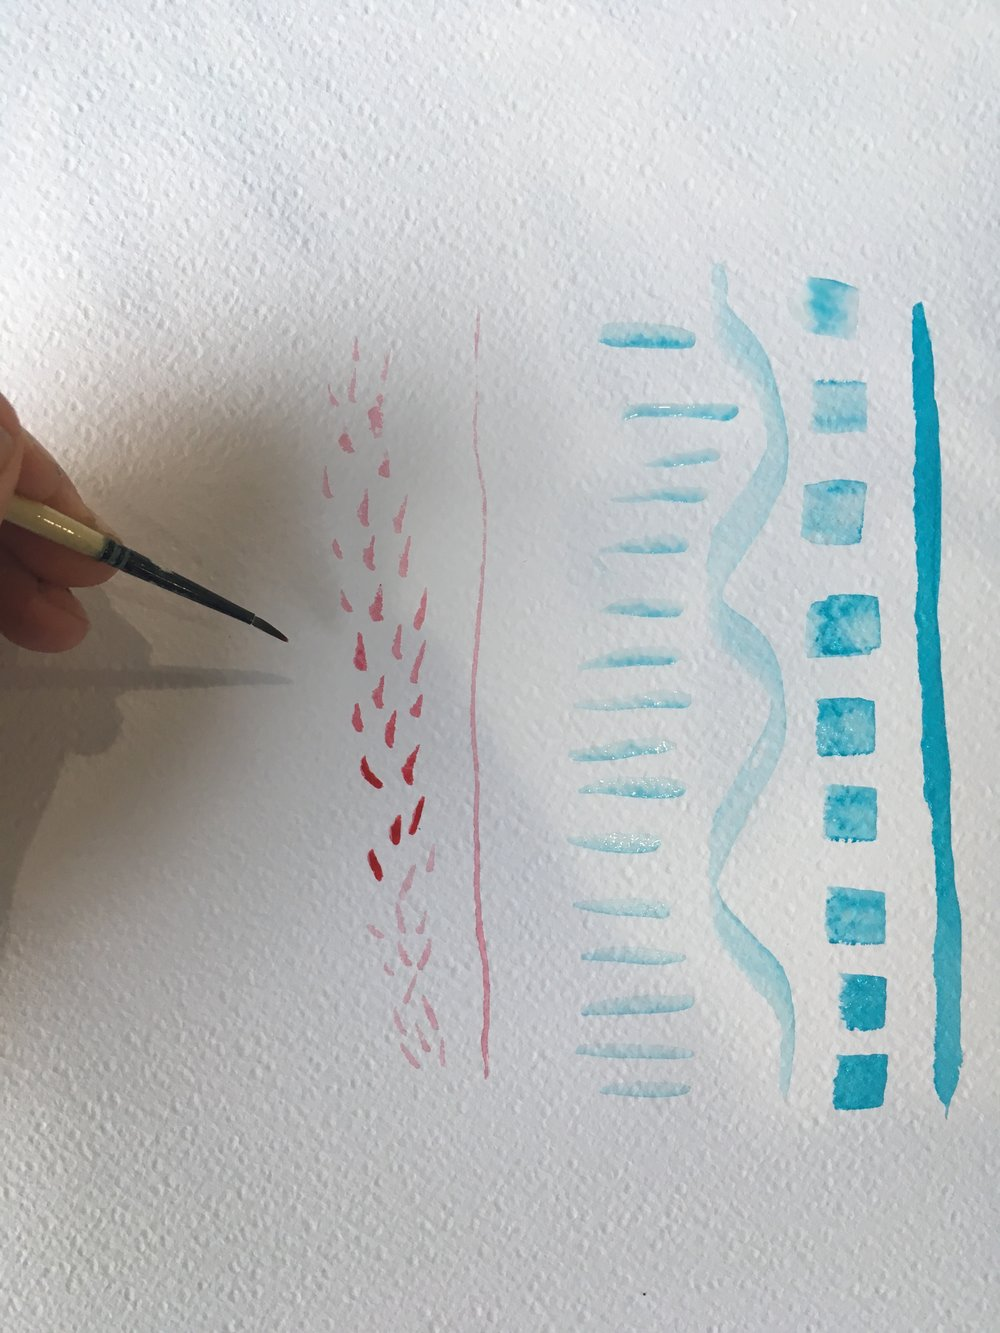 Making small dots